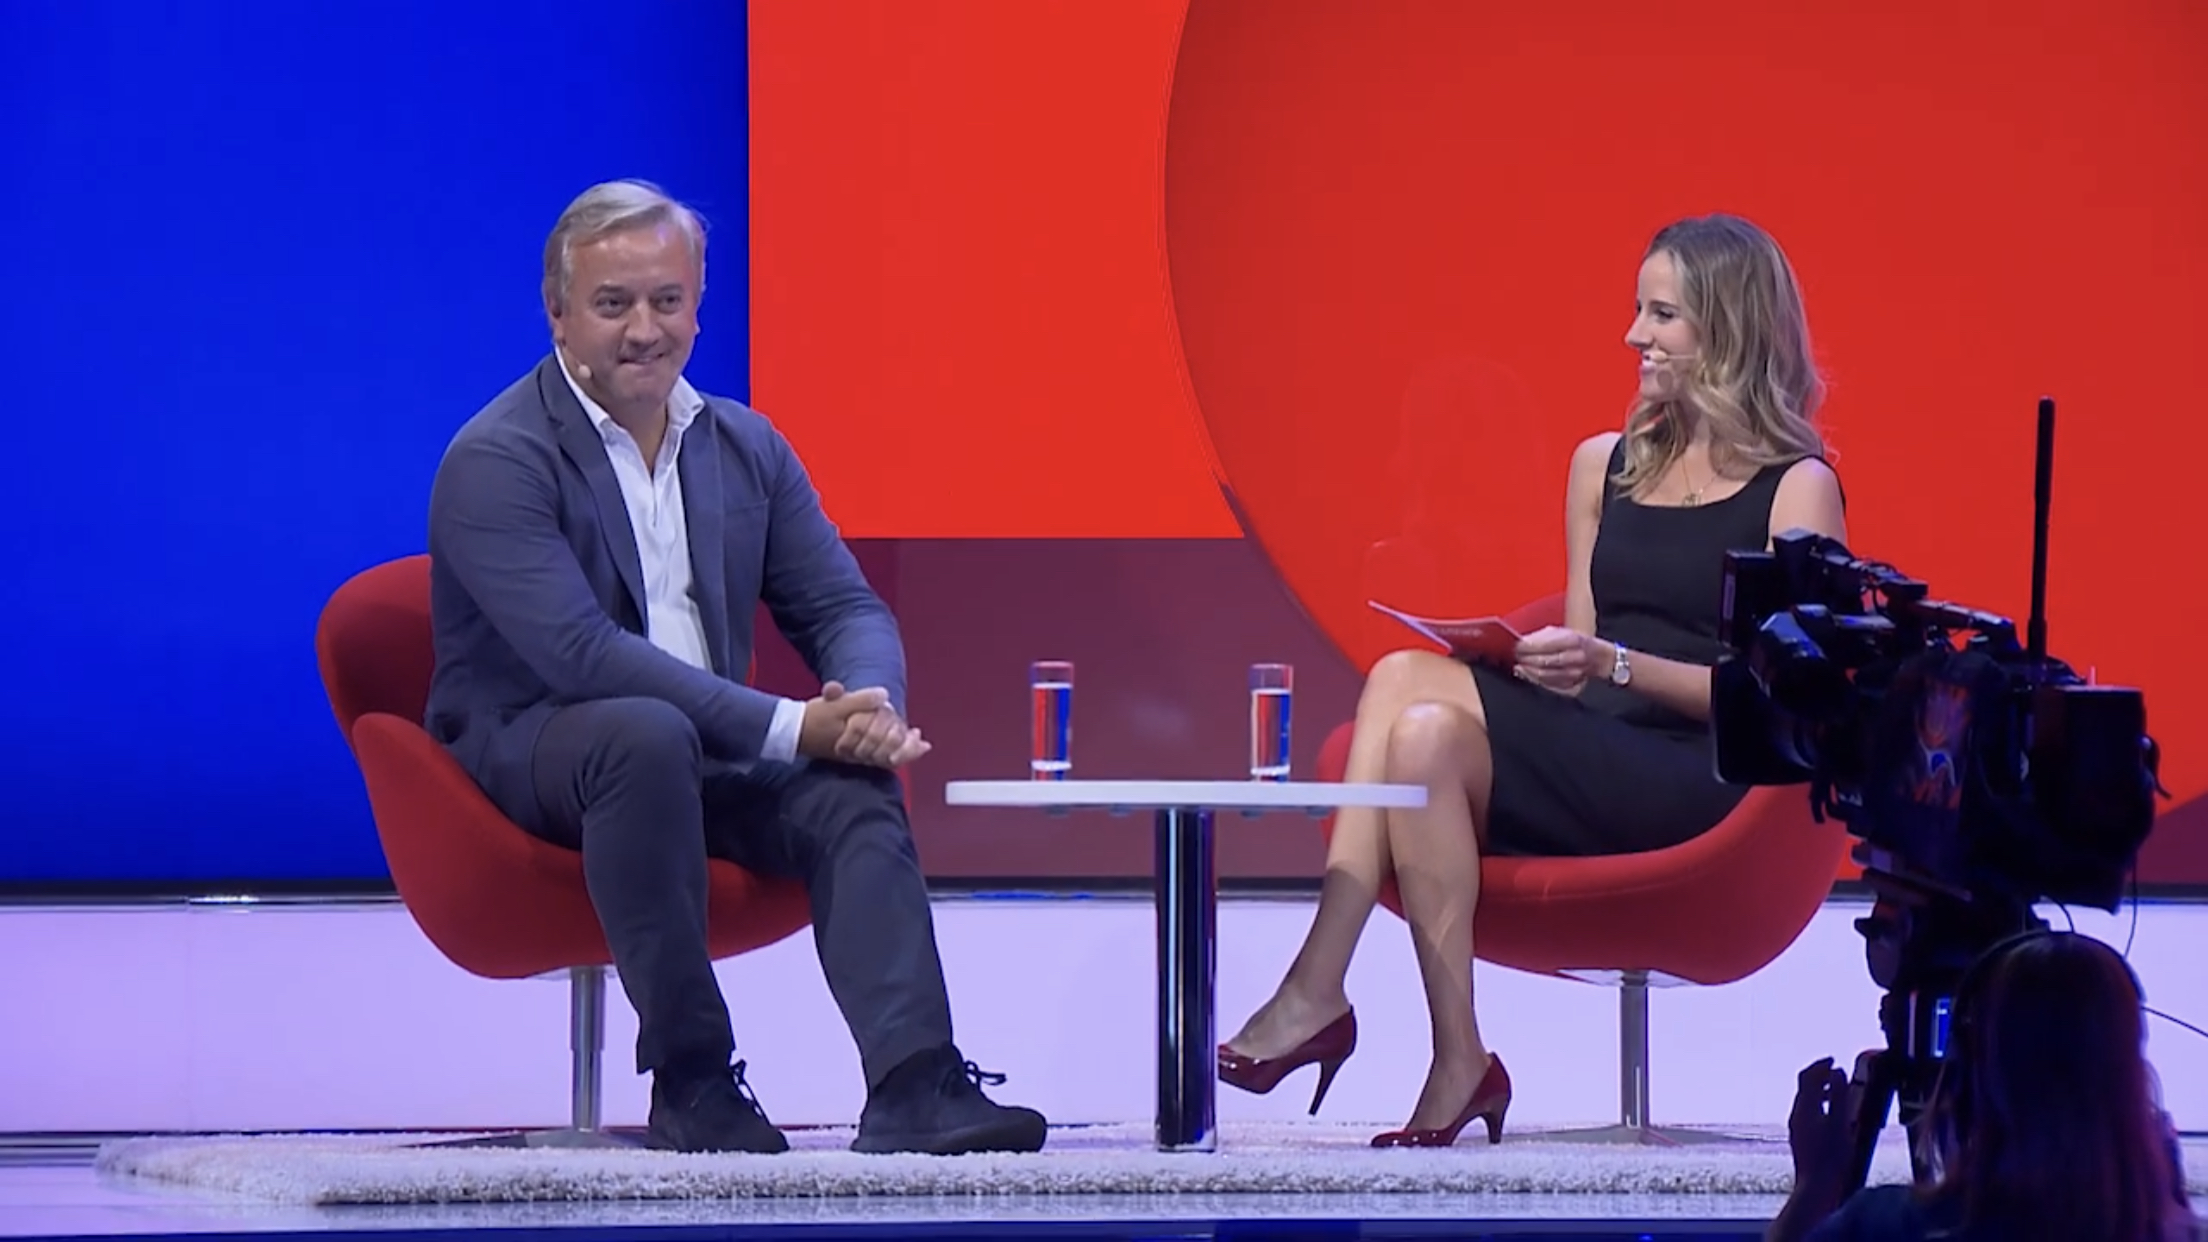 Louise Houghton DMEXCO 2019 Dominic Delport of Vice